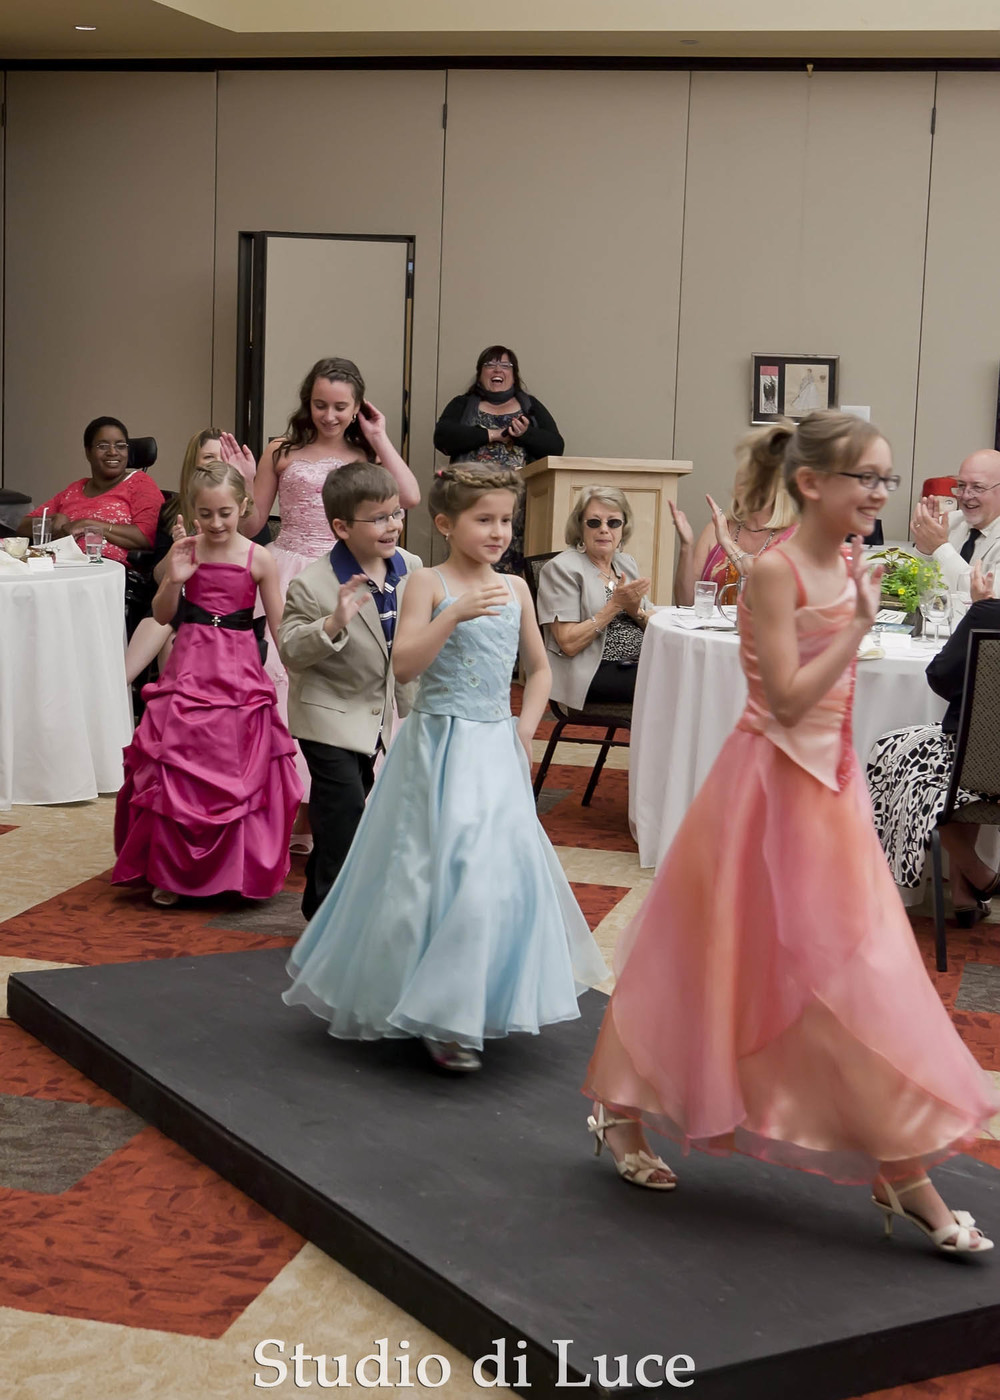 The child models take one last turn down the runway.